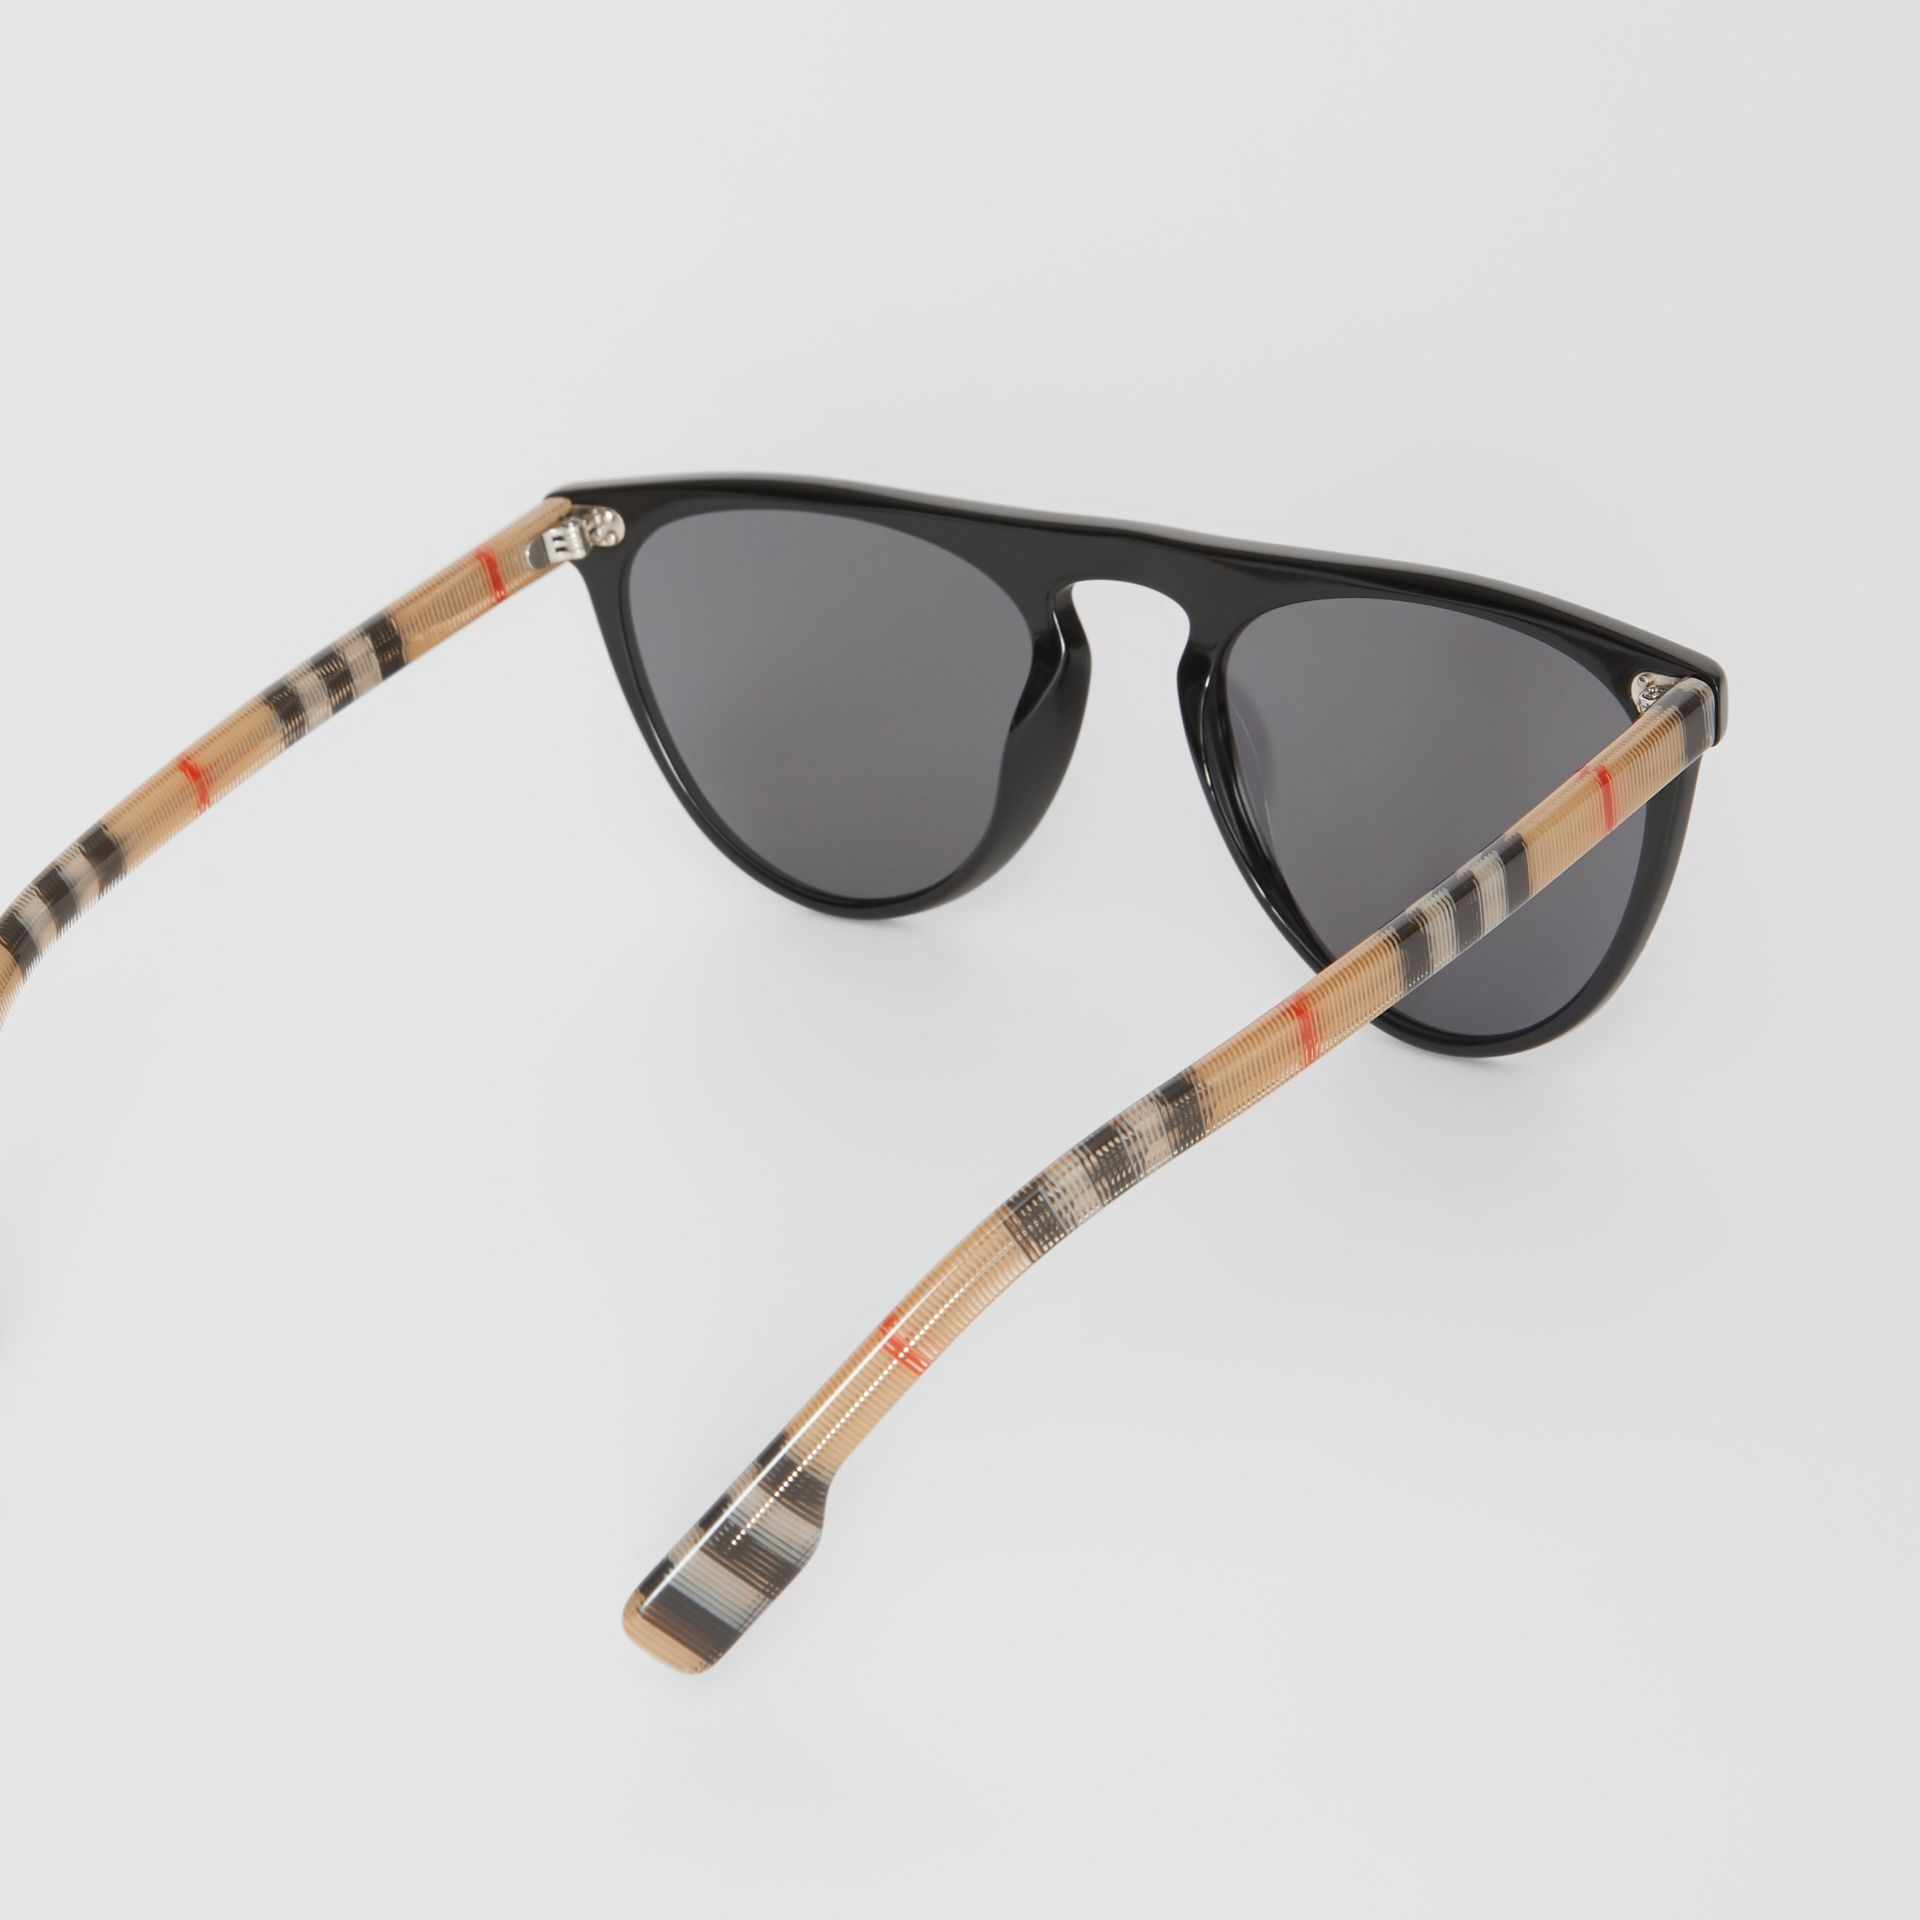 Vintage Check Detail Keyhole D-shaped Sunglasses in Black/beige - Men | Burberry Canada - gallery image 4